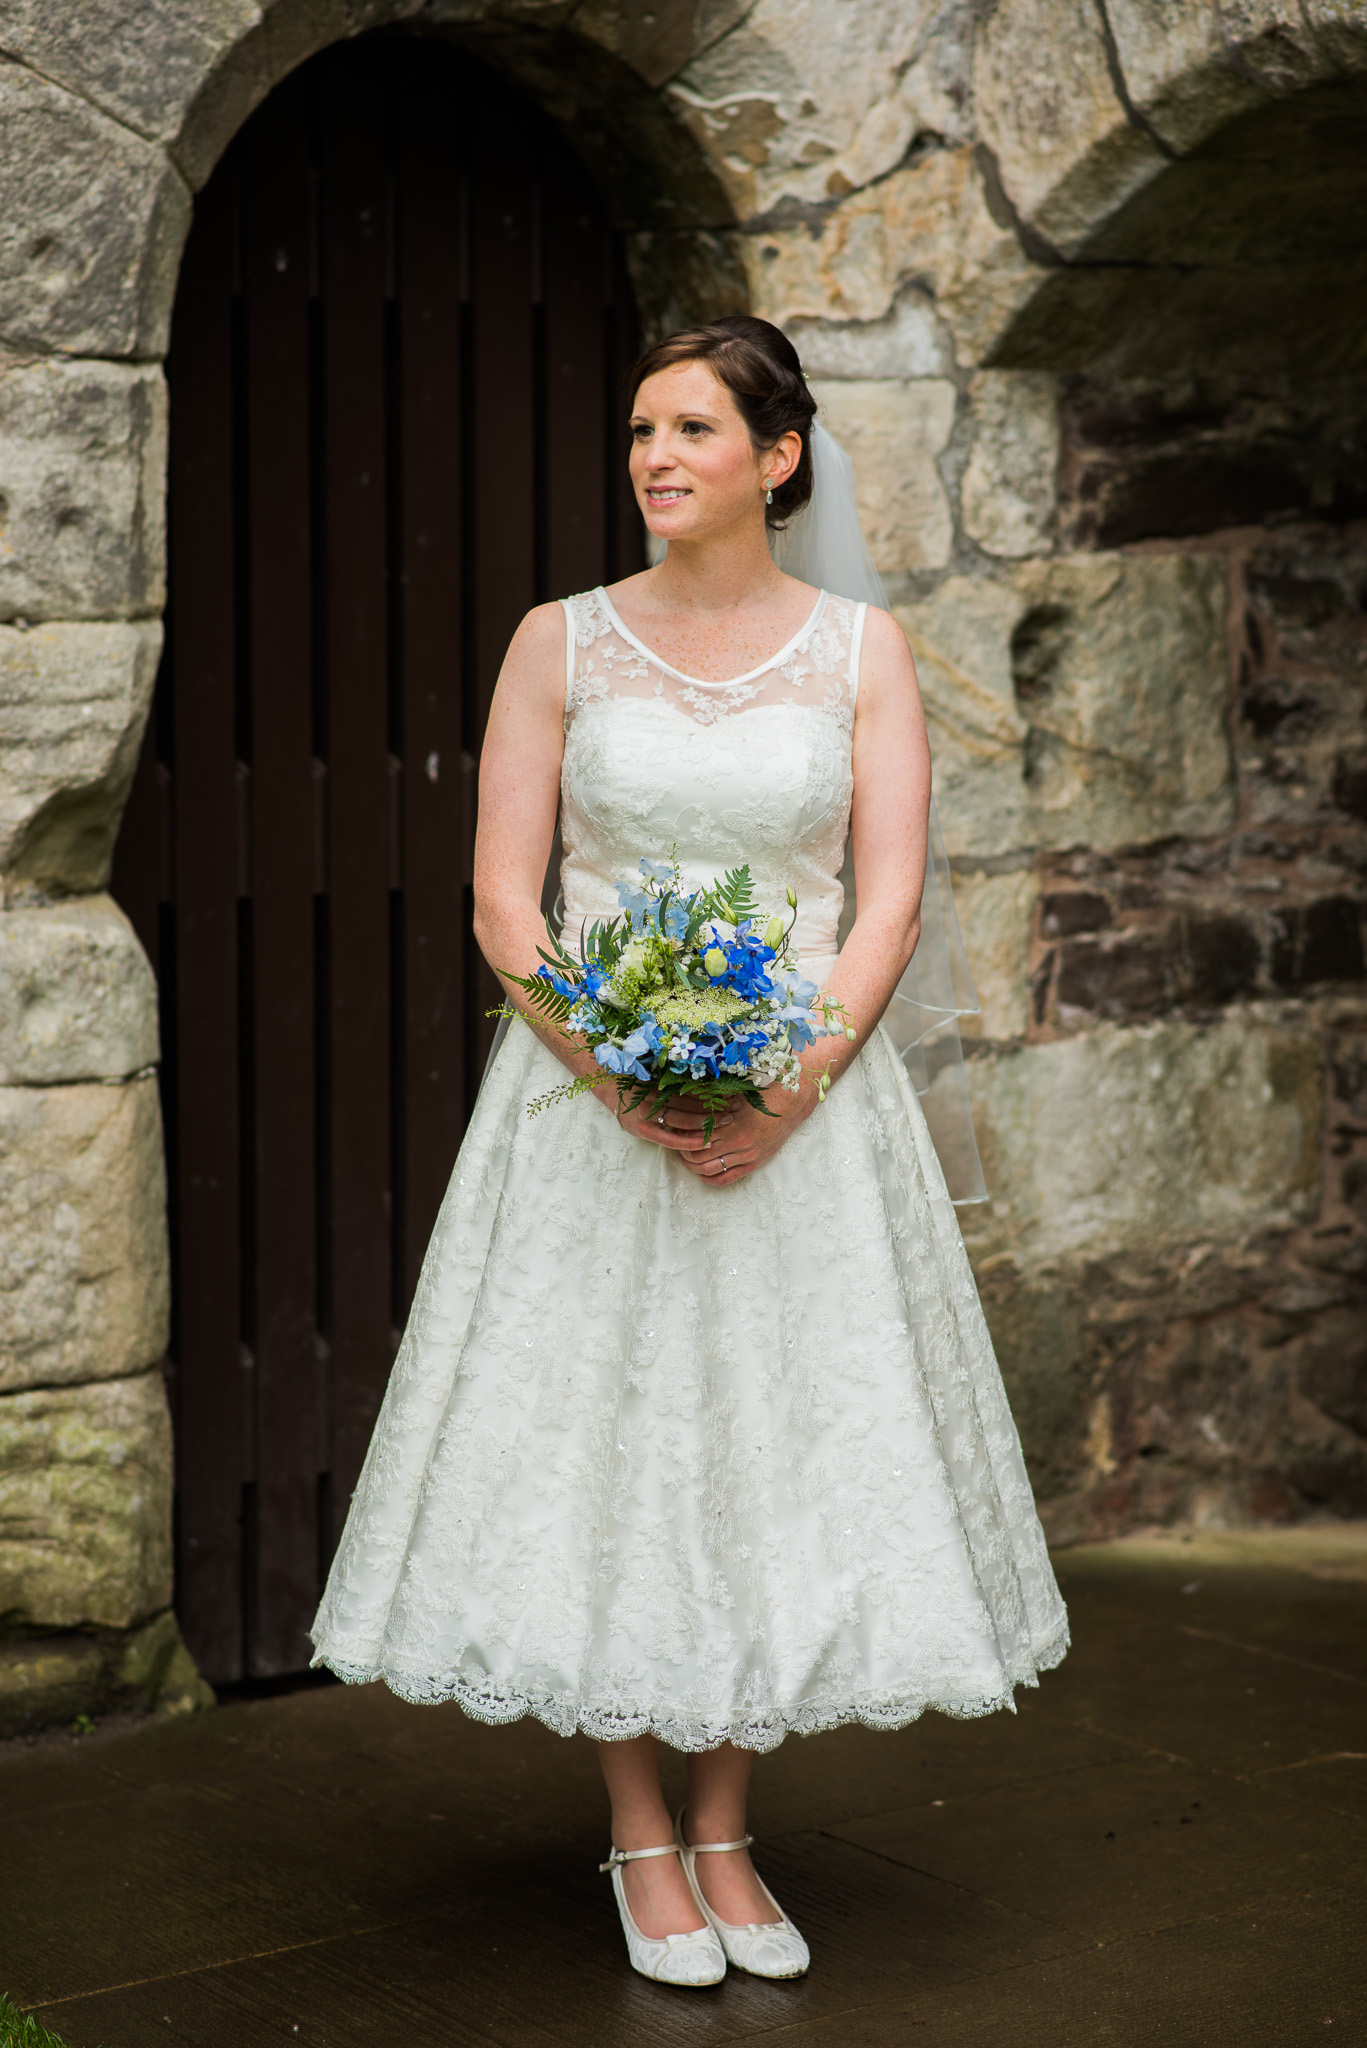 Bride wearing Dragonfly Dress Design Wedding Dress